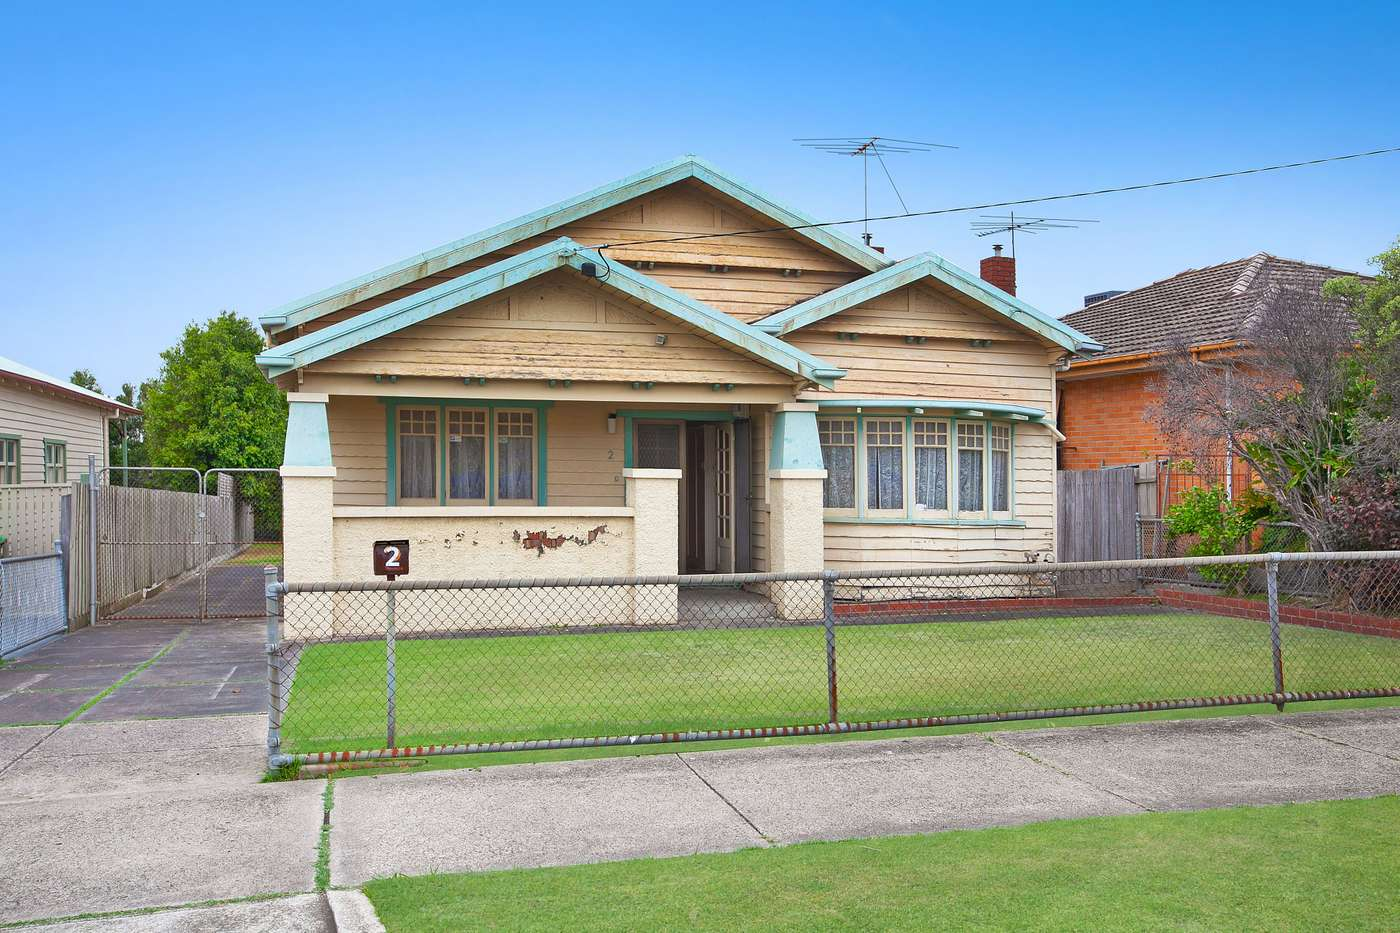 Main view of Homely house listing, 2 Margtmary Avenue, Preston, VIC 3072